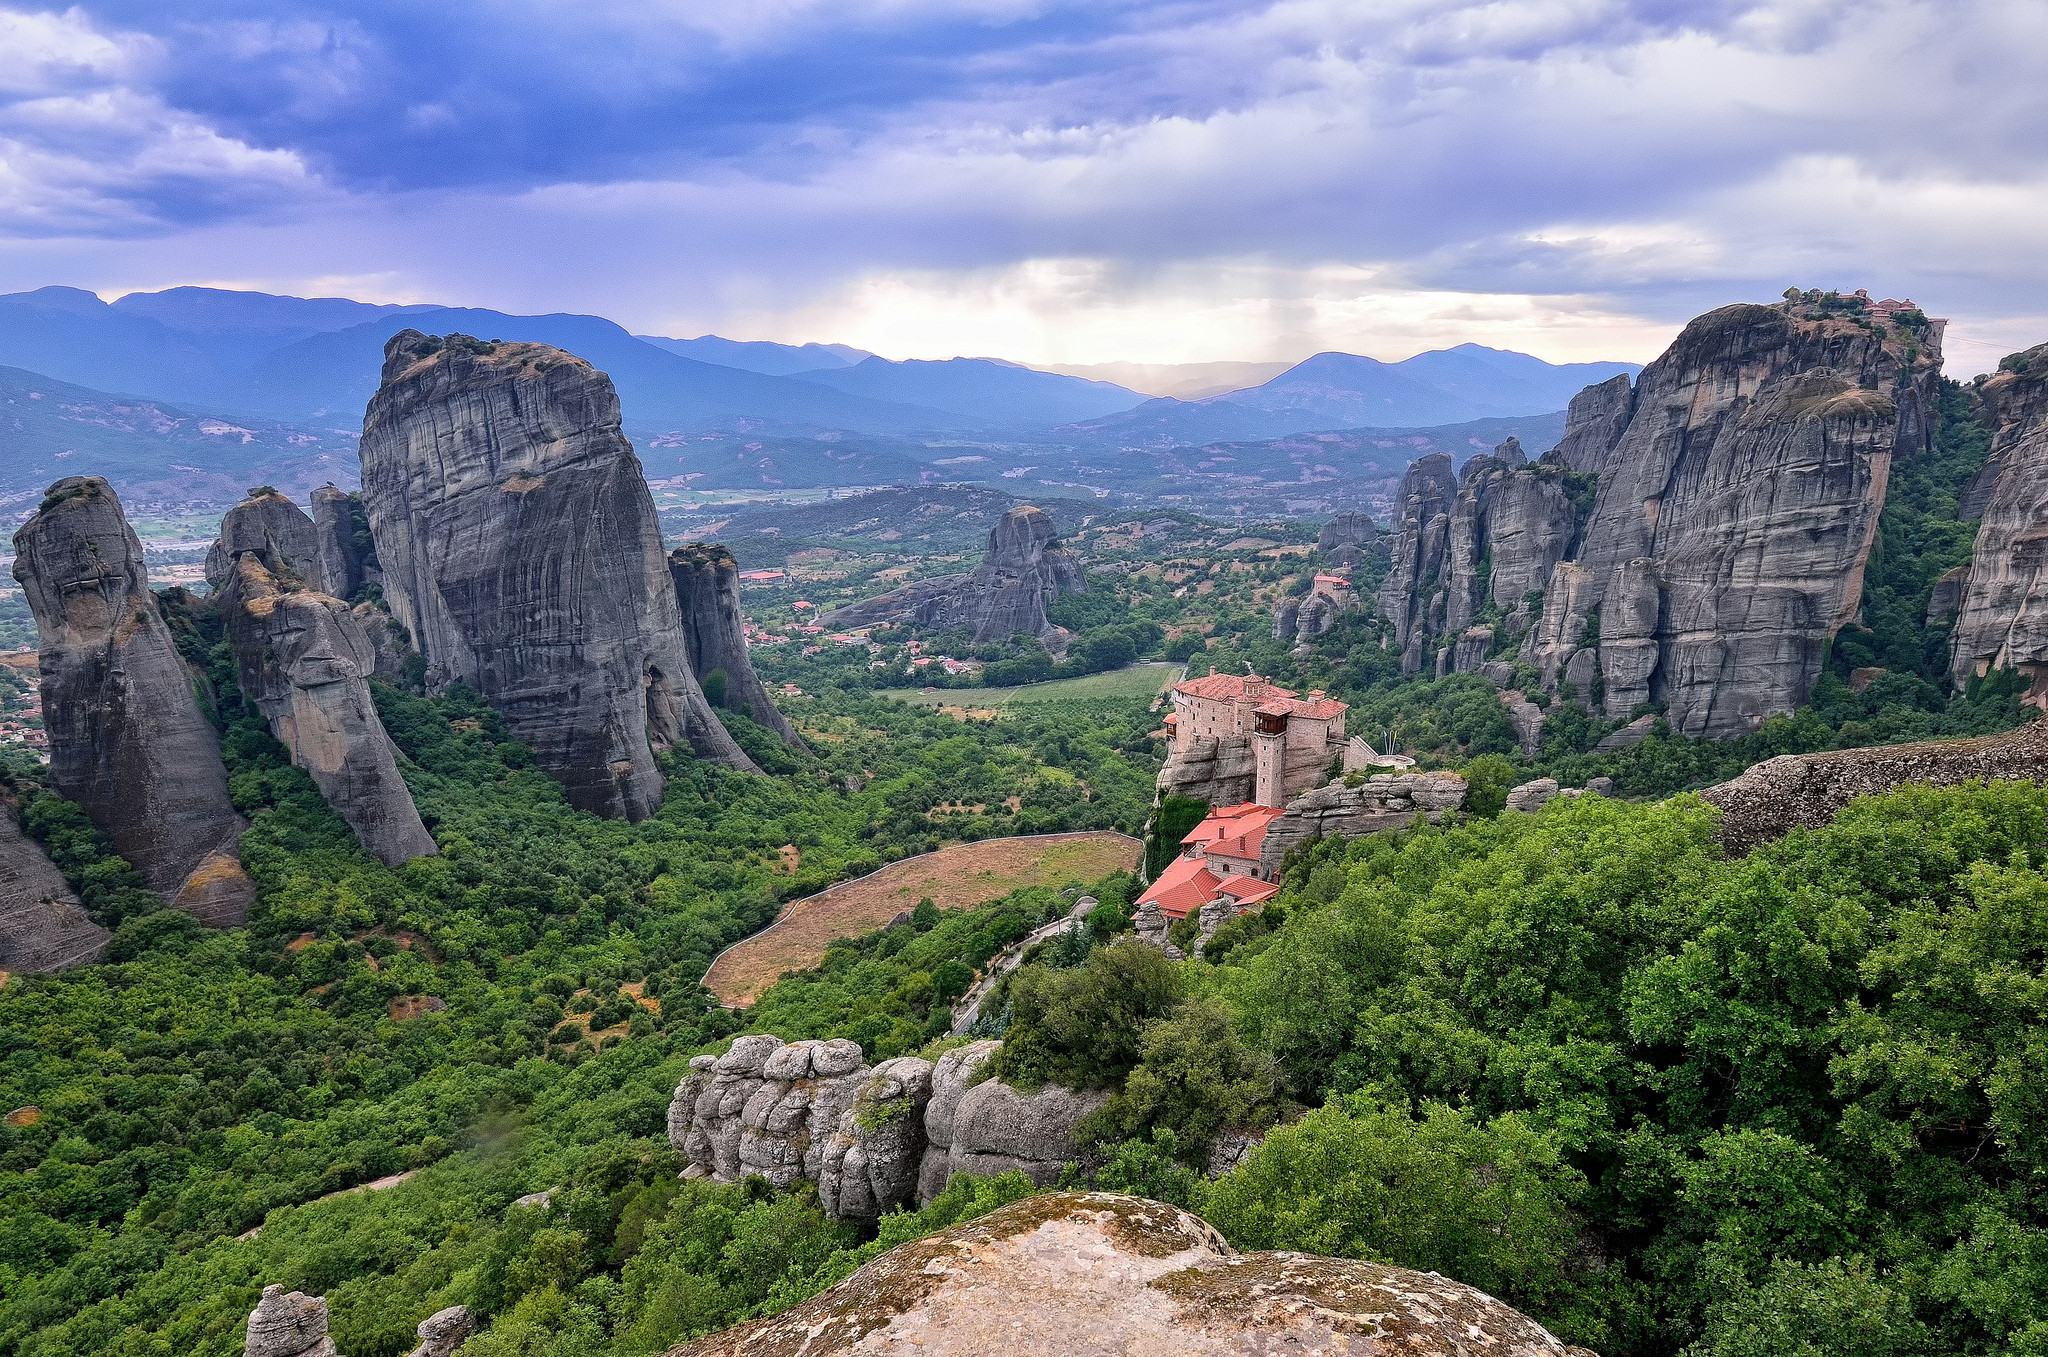 Meteora, Kalabaka, Greece